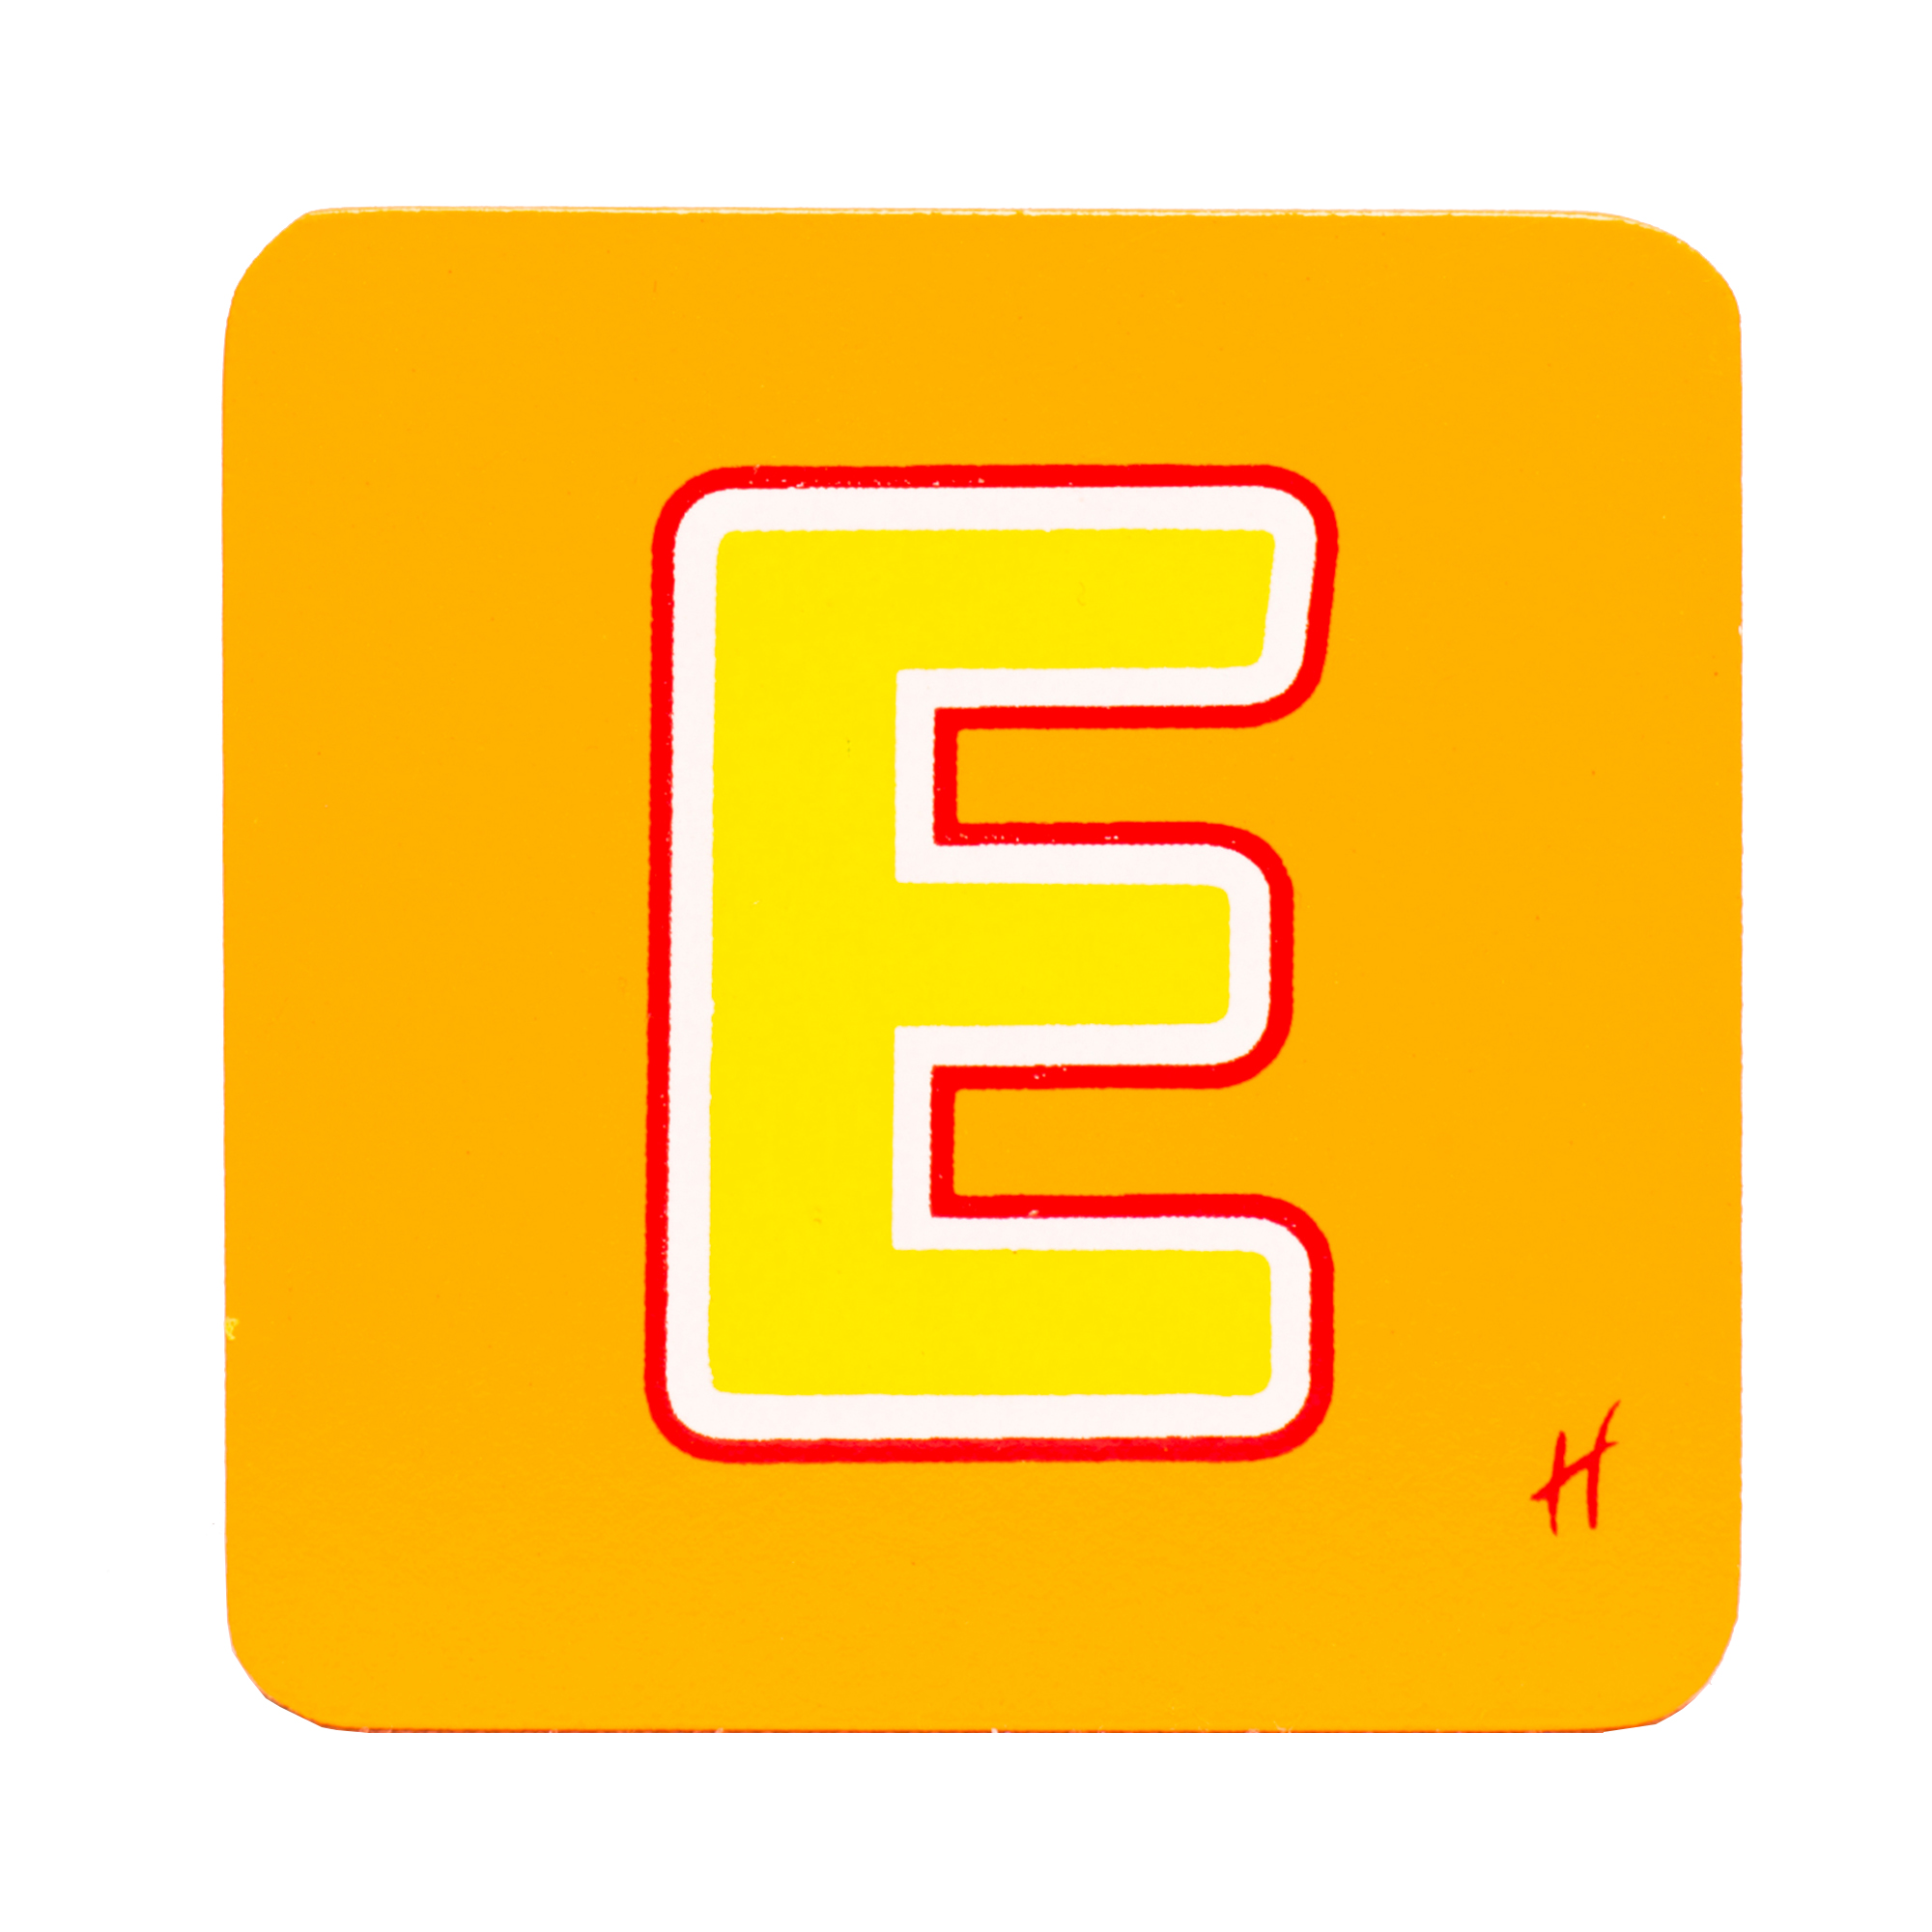 Hamleys Wooden Letter E